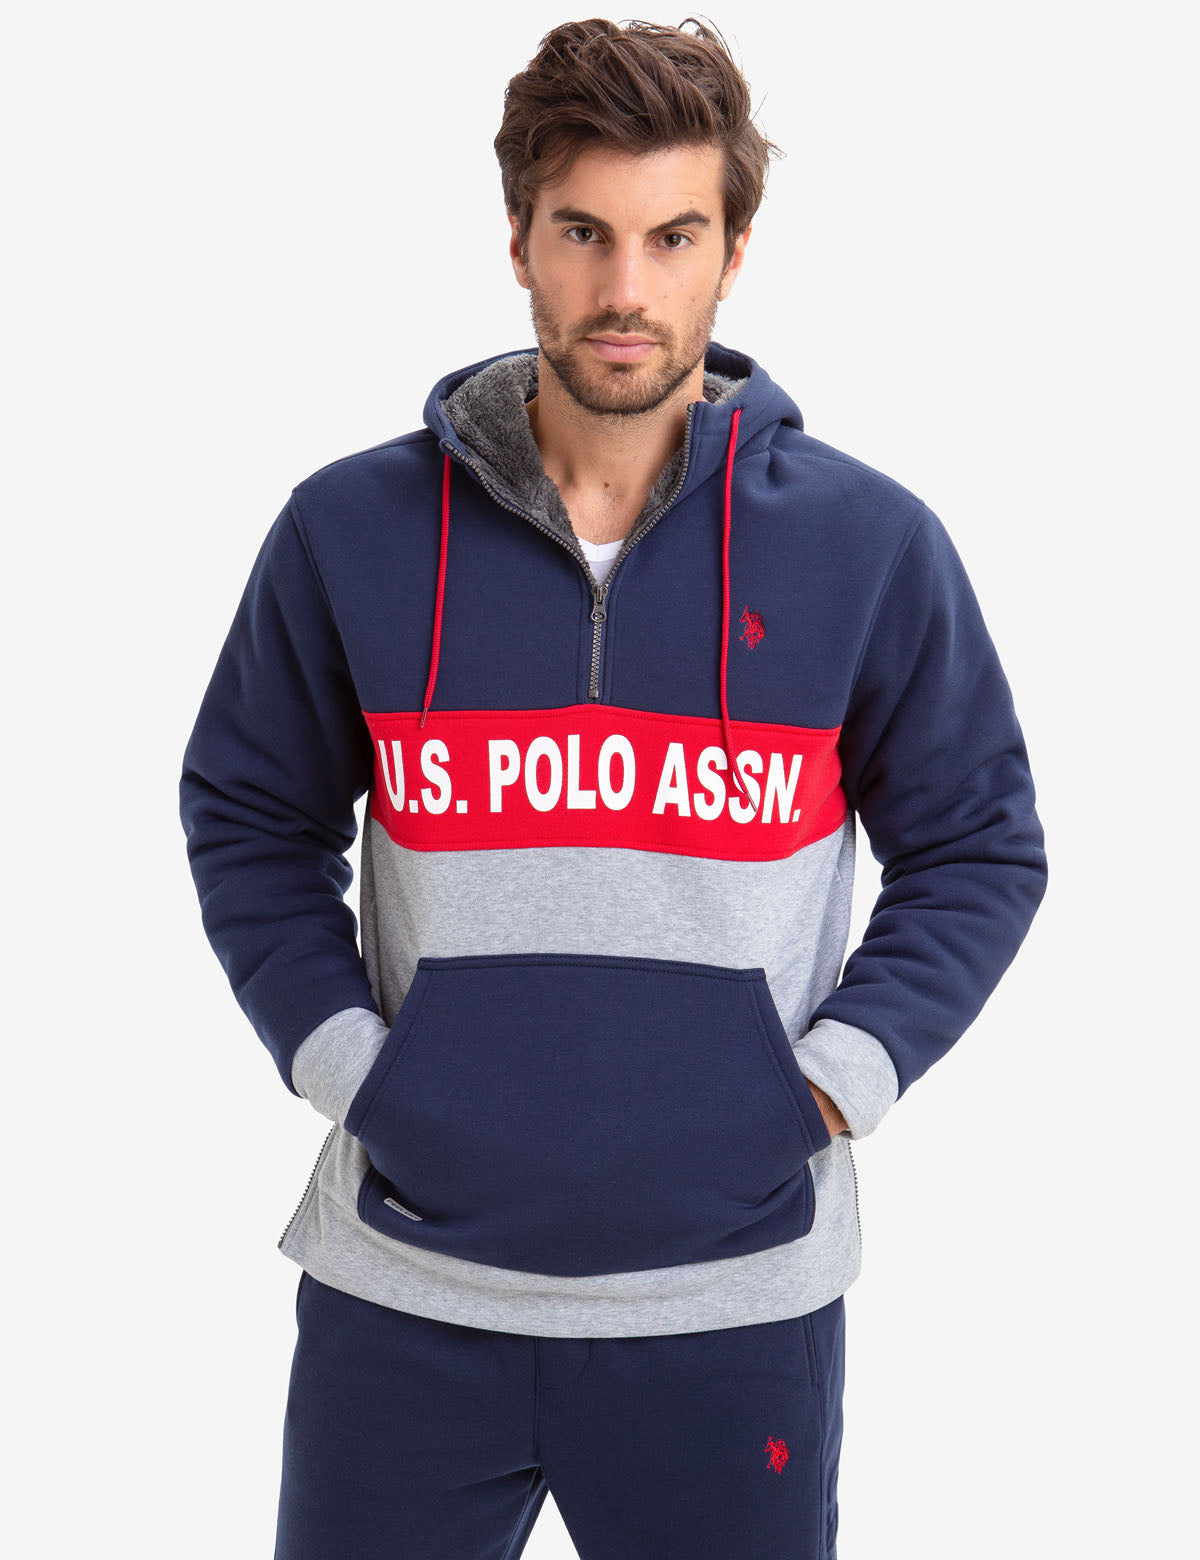 COLORBLOCK FAUX SHEARLING LINED U.S. POLO ASSN. HOODIE